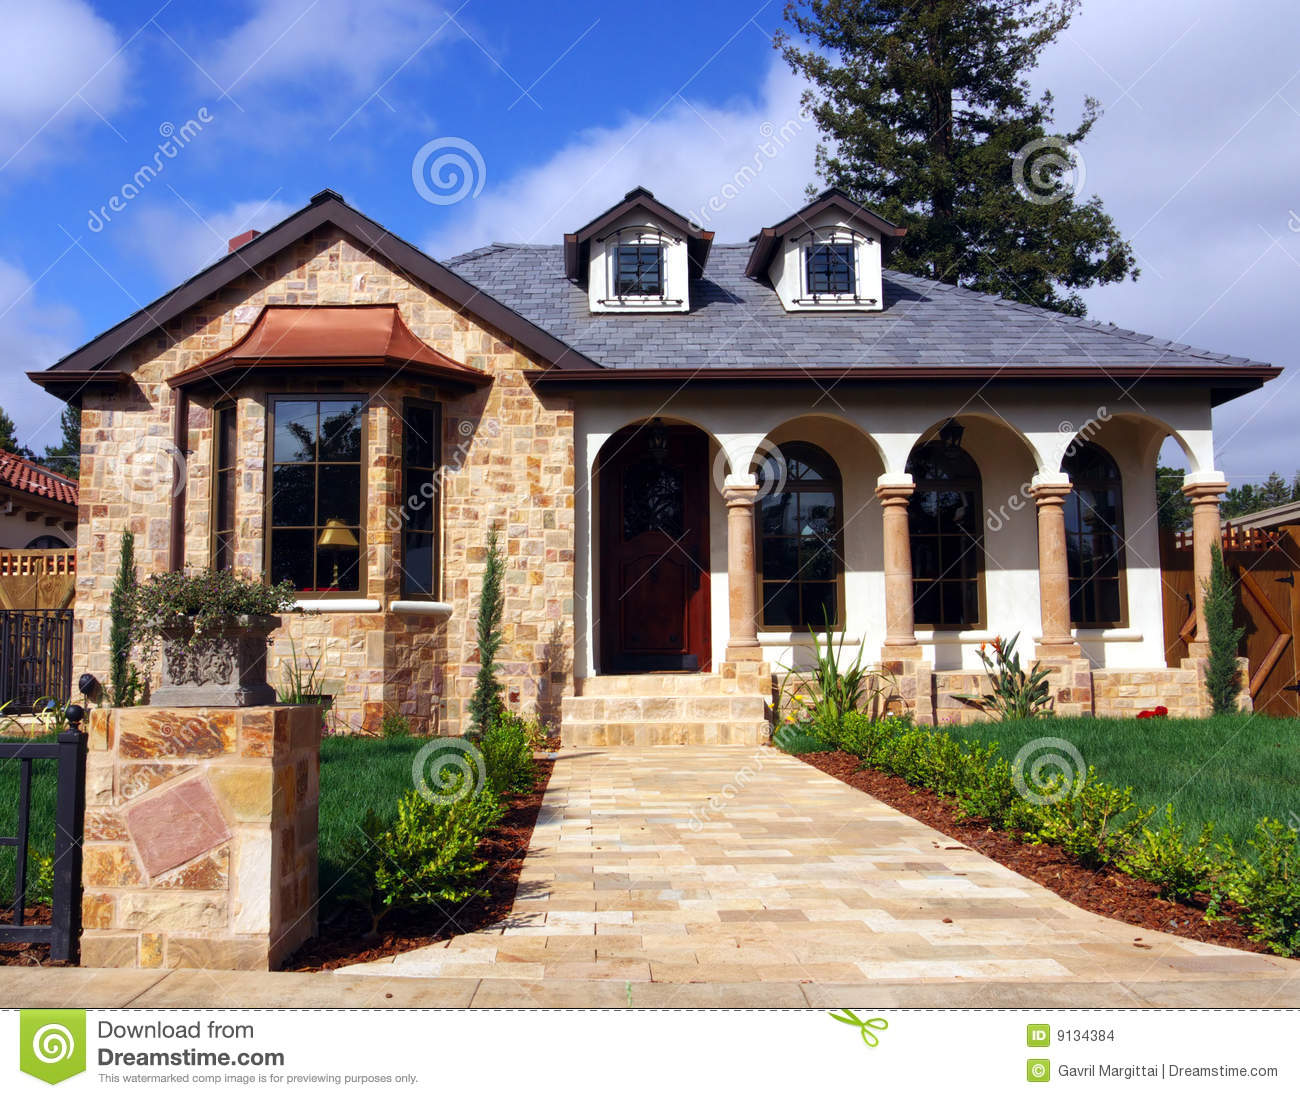 House with stone facade stock images image 9134384 Houses with stone facade